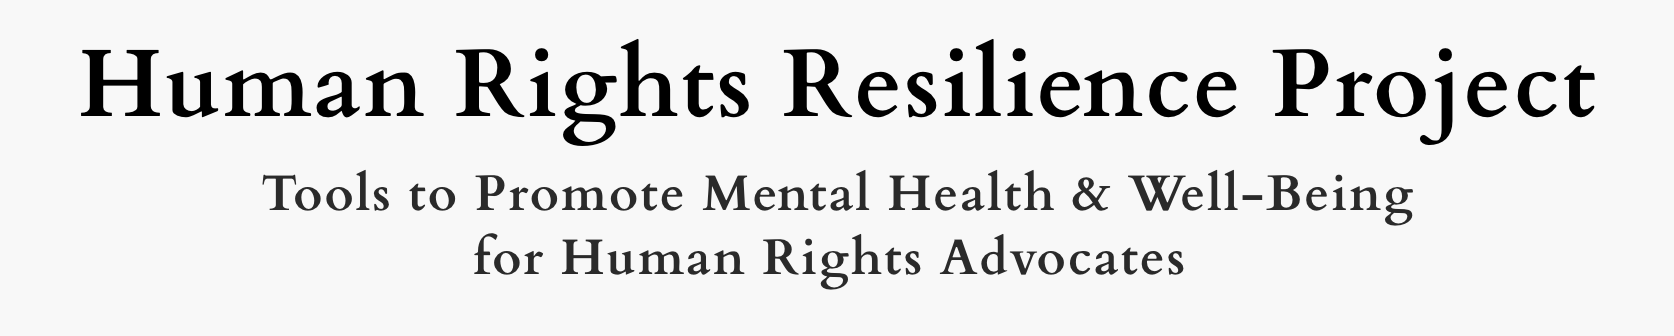 Human Rights Resilience Project.png